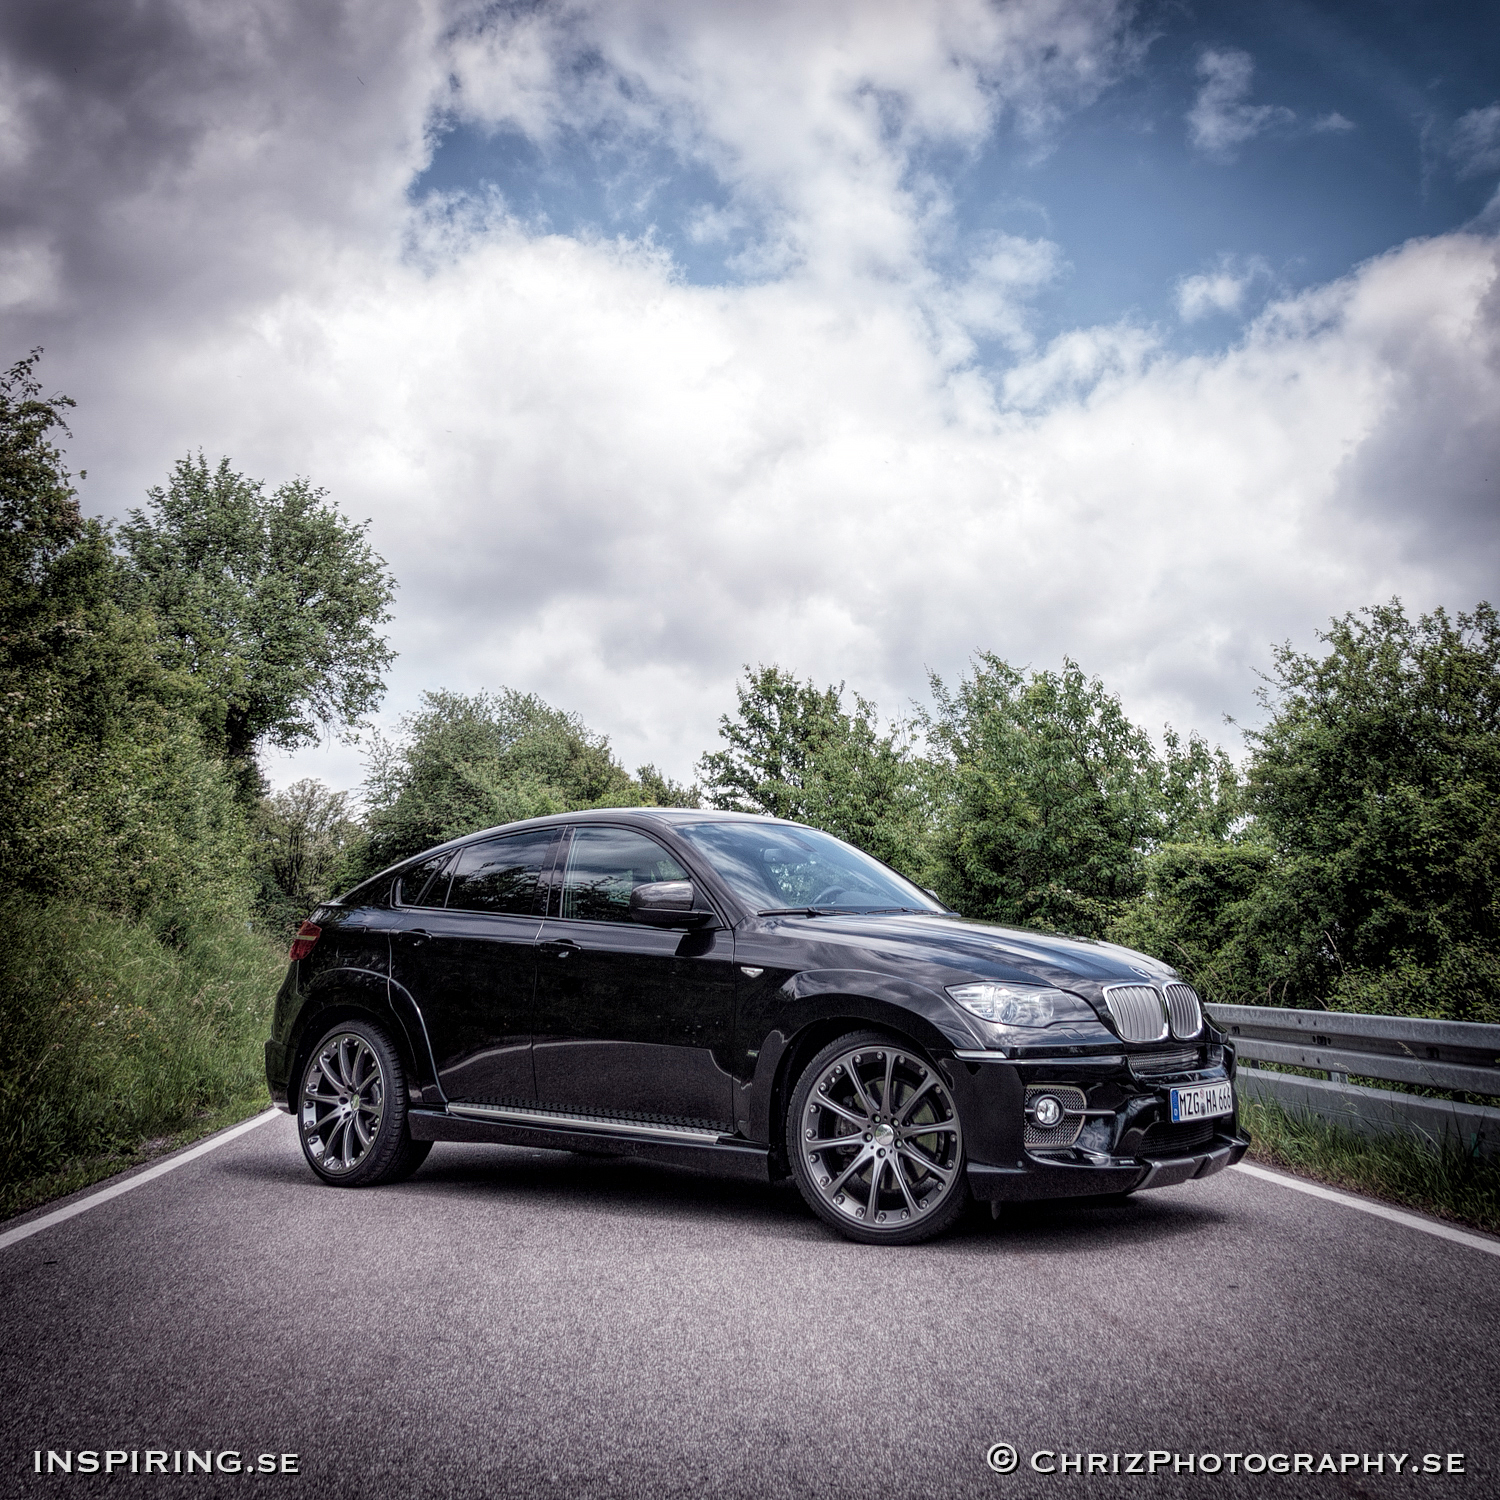 Inspiring.se_OUTTHERE_copyright_ChrizPhotography.se_625_BMW_Hartge_X6.jpg